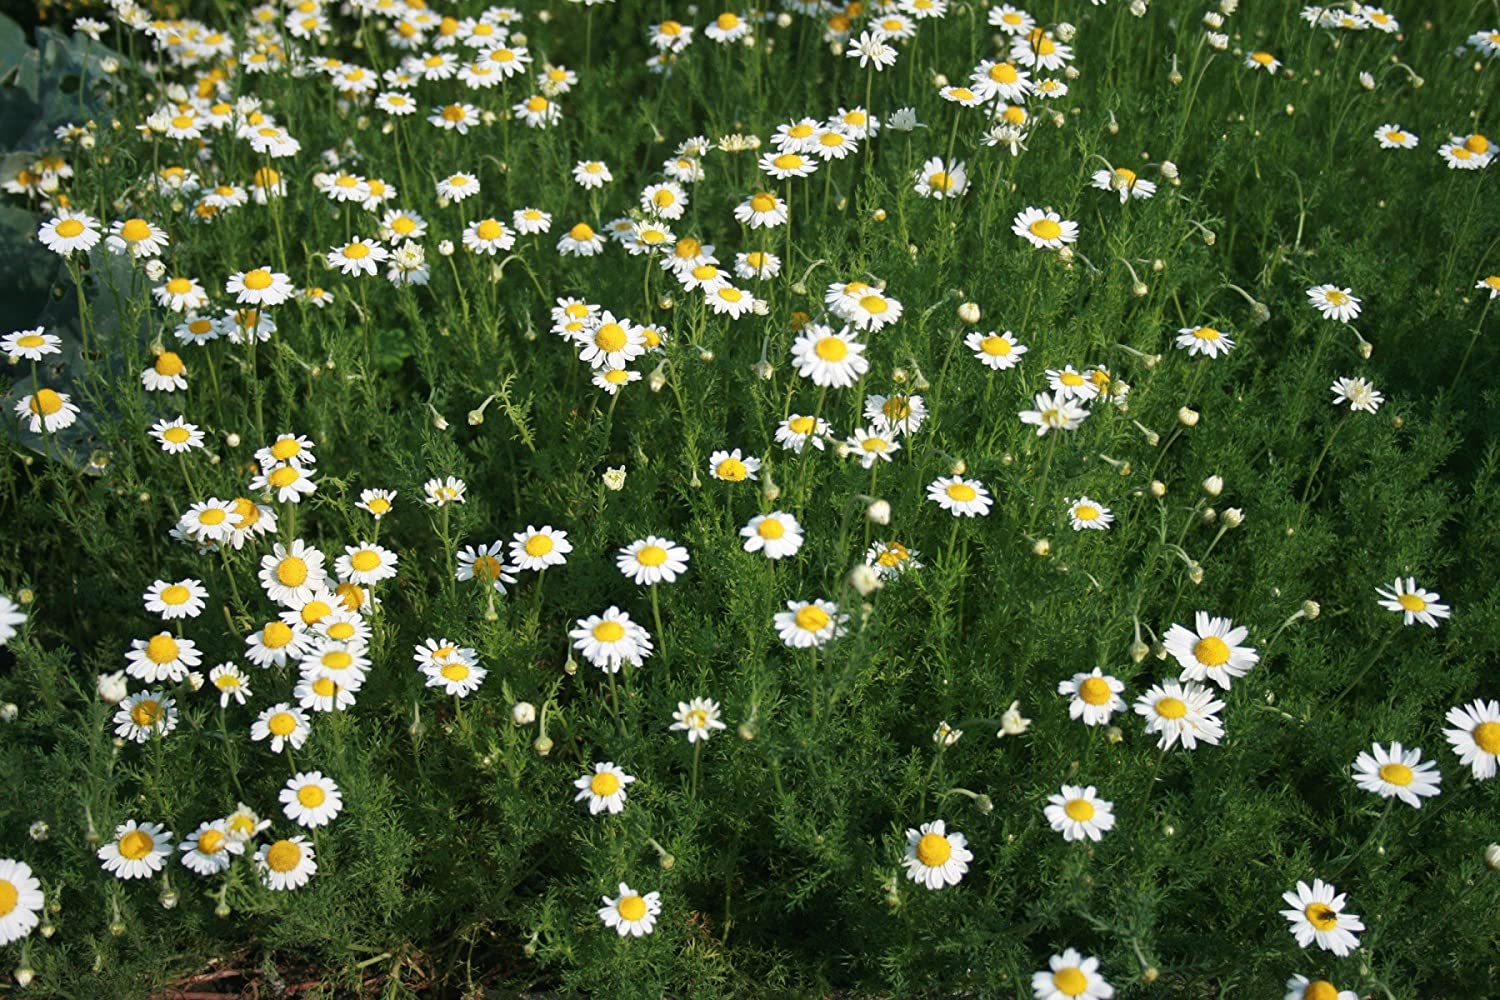 Asklepios-seeds® - 5000 seeds Anthemis nobilis, chamomile, camomile, Roman chamomile, English chamomile, garden chamomile, ground apple, low chamomile, mother's daisy, whig plant mother's daisy